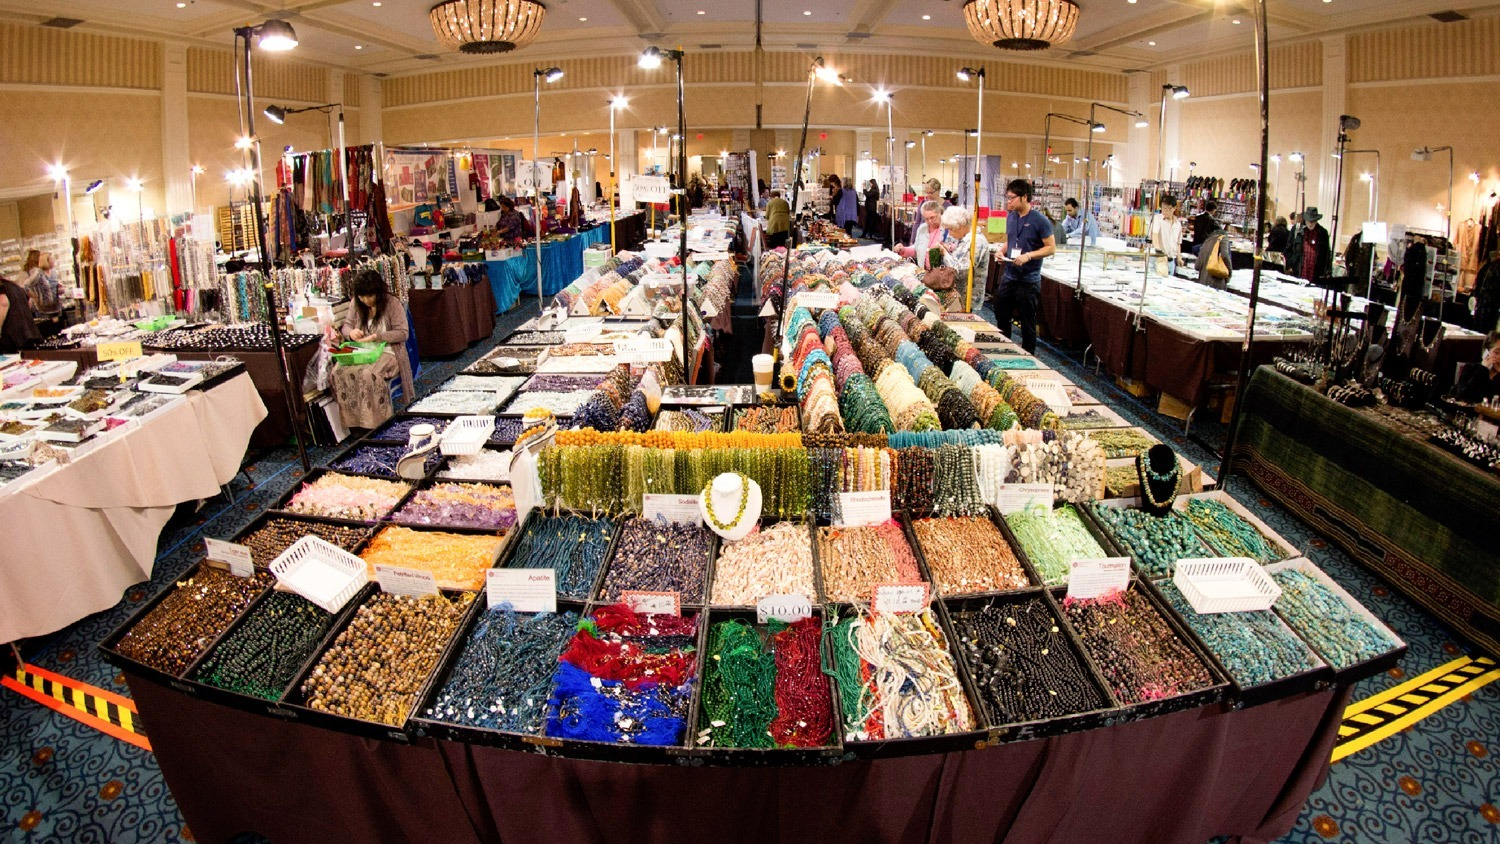 Katja Liebing/Courier Steffanie Ming, of Los Angeles, a former Pasadena City College student, looks at beads and other merchandise she considers buying at the Pasadena Bead & Design Show in the Hilton Hotel in Pasadena on Friday, January 15, 2016. It is one of five shows produced by Garan-Beadagio LLC and offers a selection of artisan booths, galleries, workshops and merchant displays.